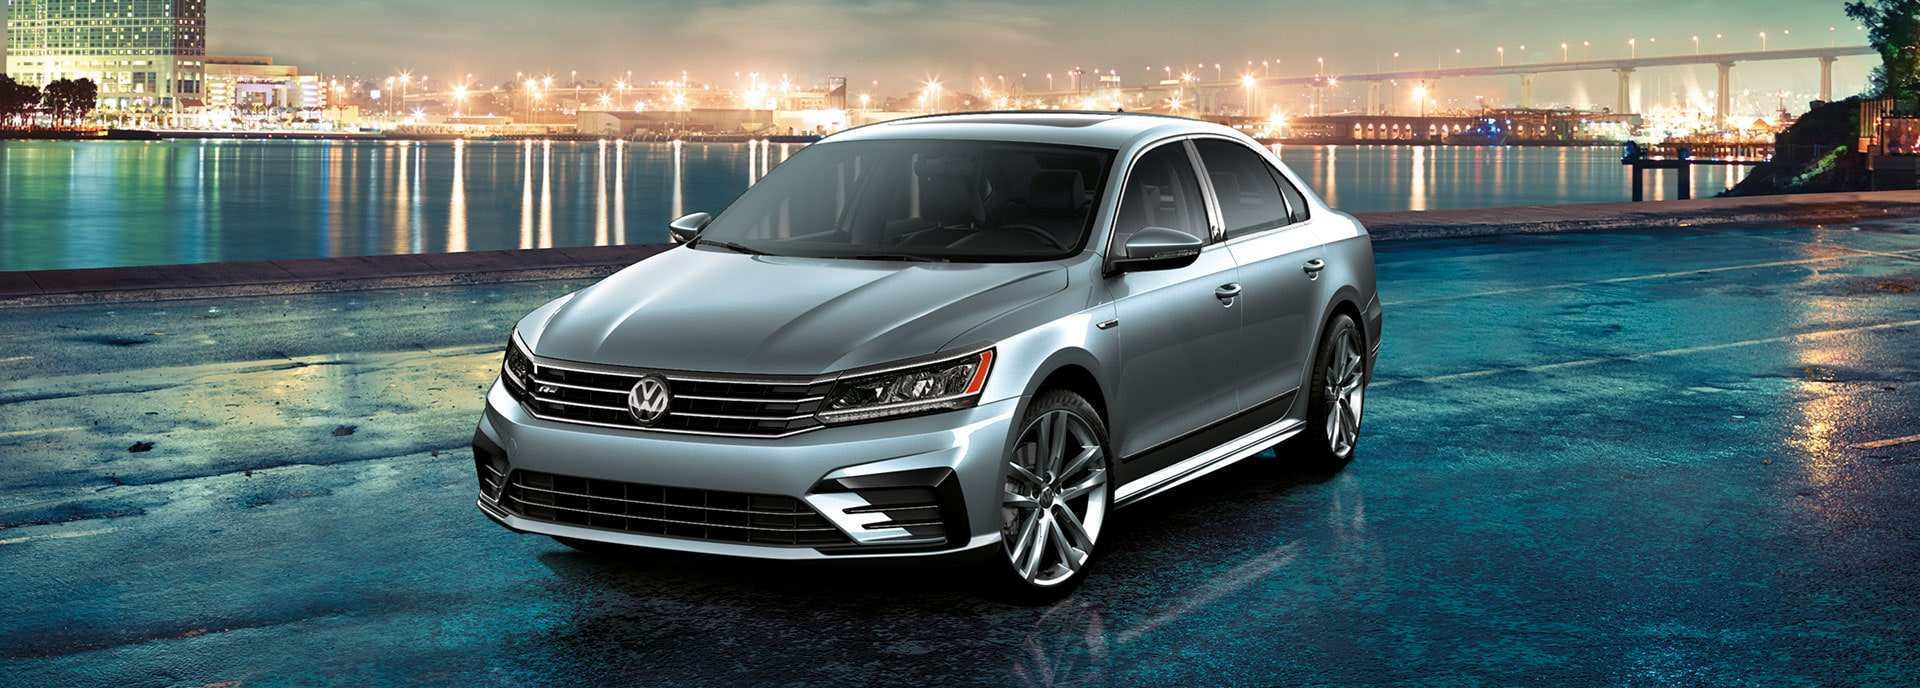 39 The Best Vw Passat Gt 2019 Concept And Review